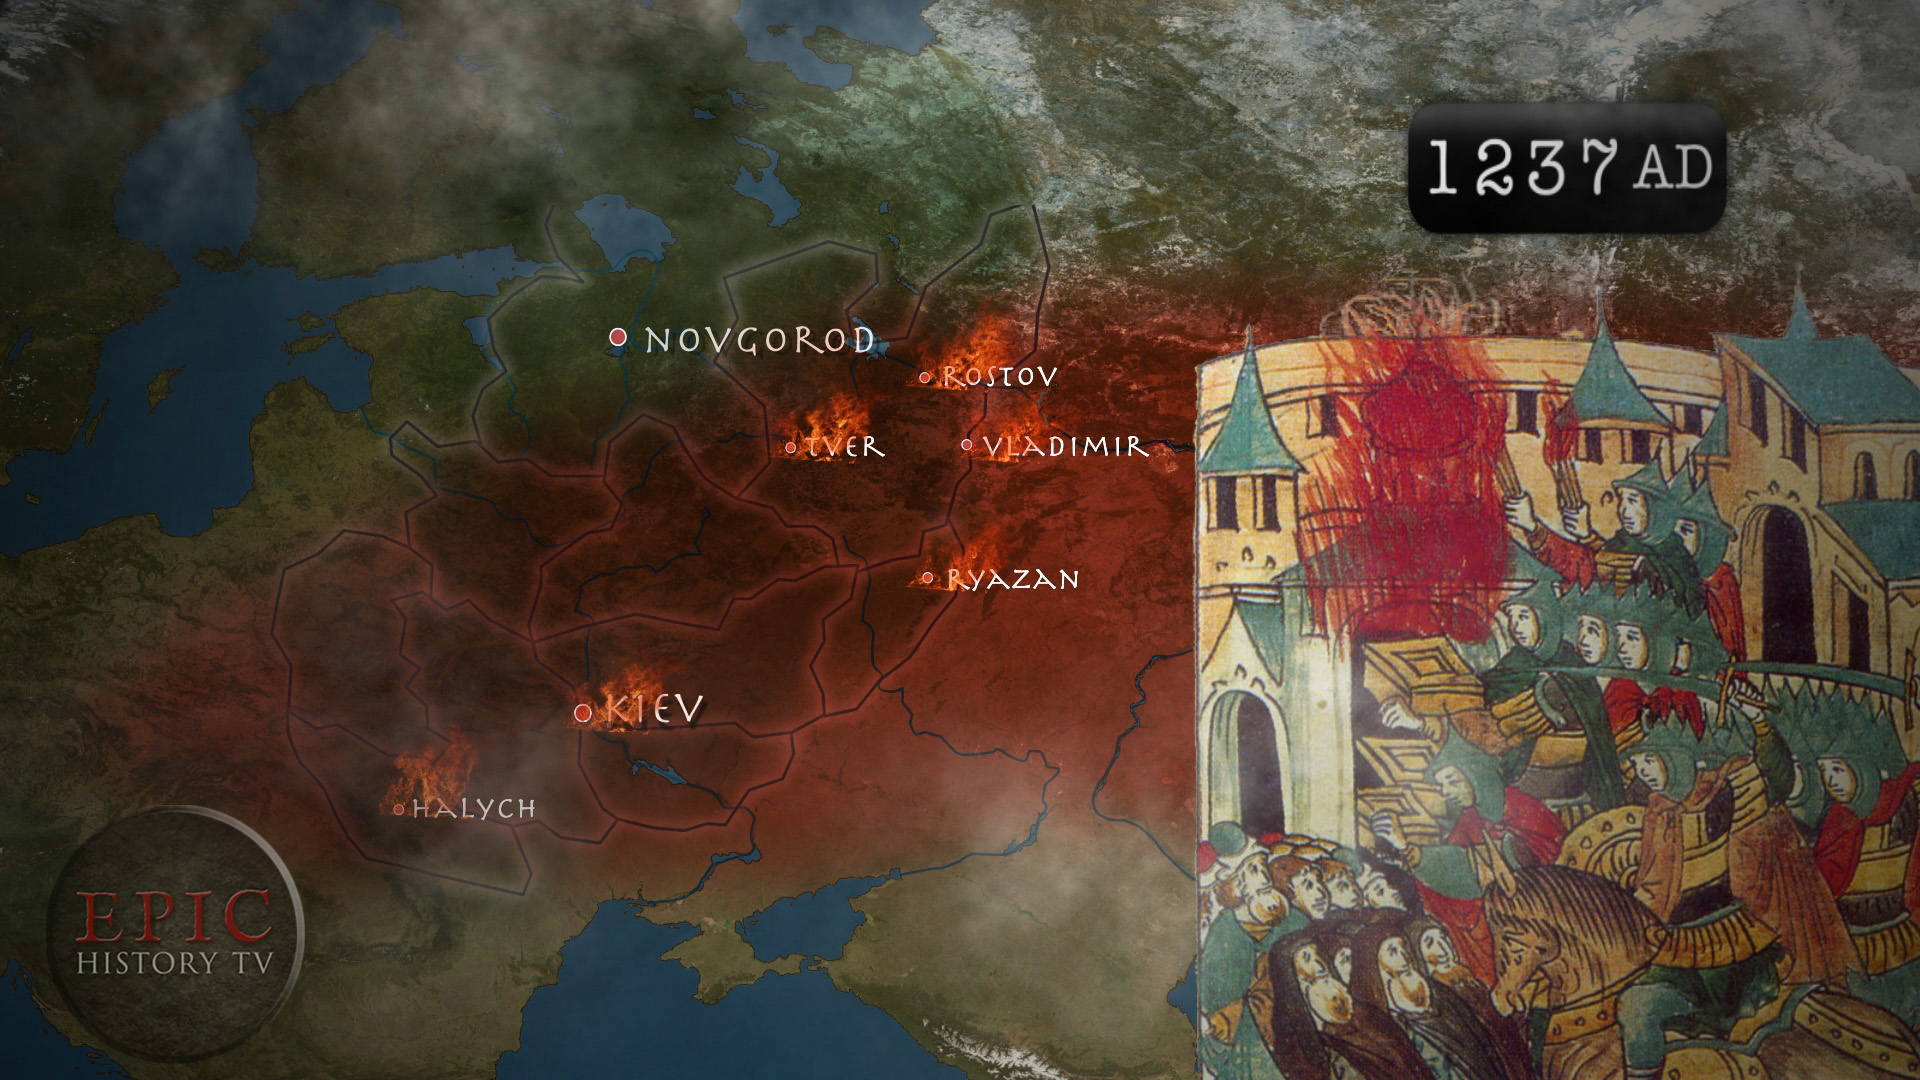 Russian mongol invasion 1237 AD